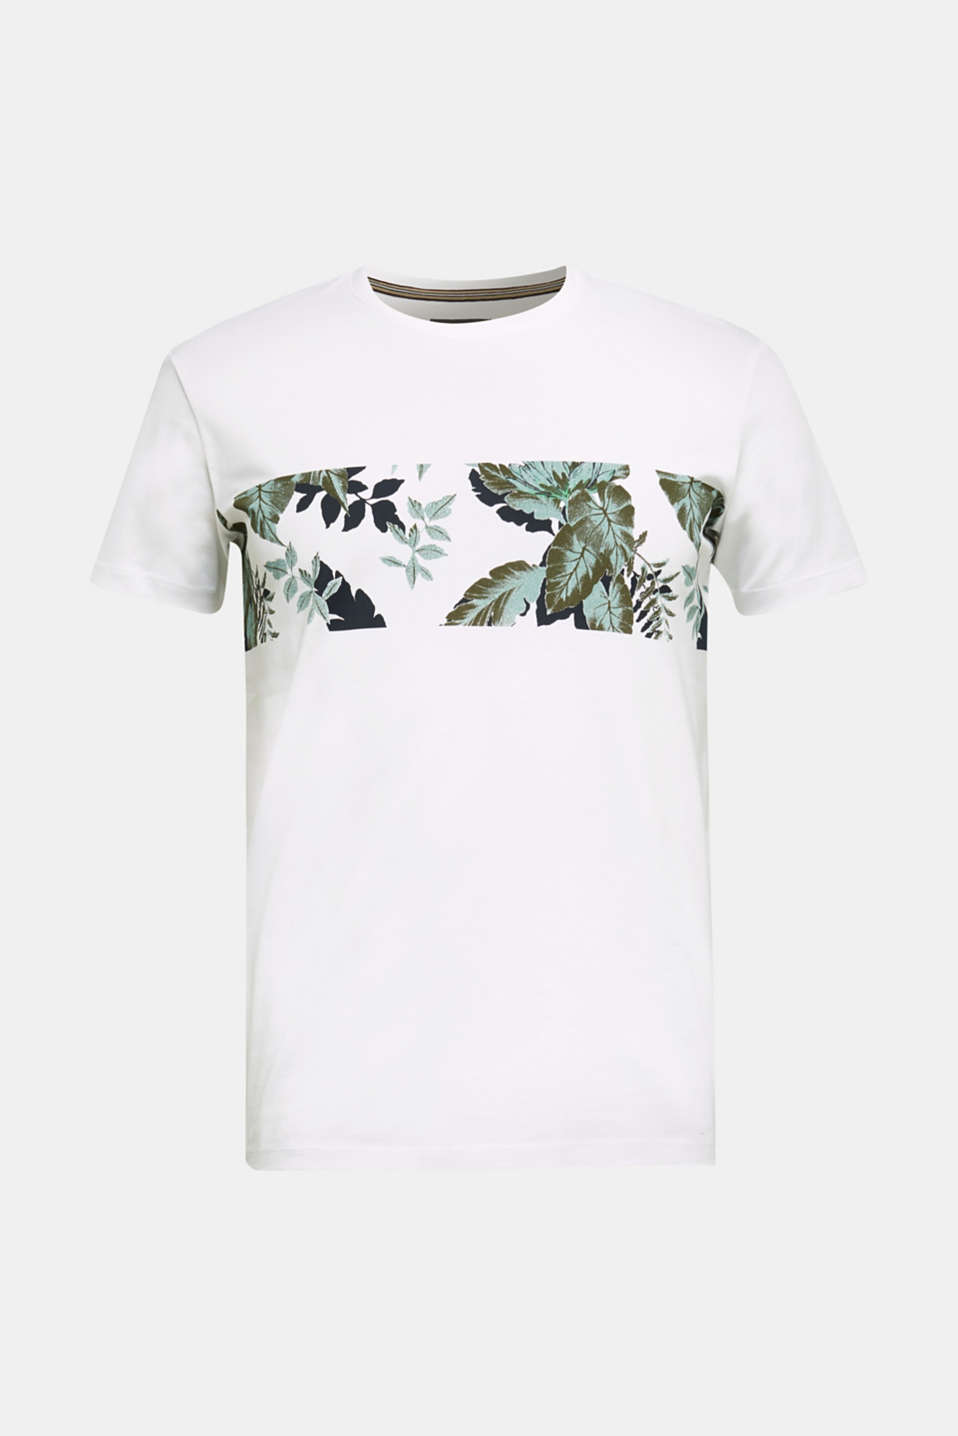 Jersey T-shirt in 100% cotton, WHITE 4, detail image number 6